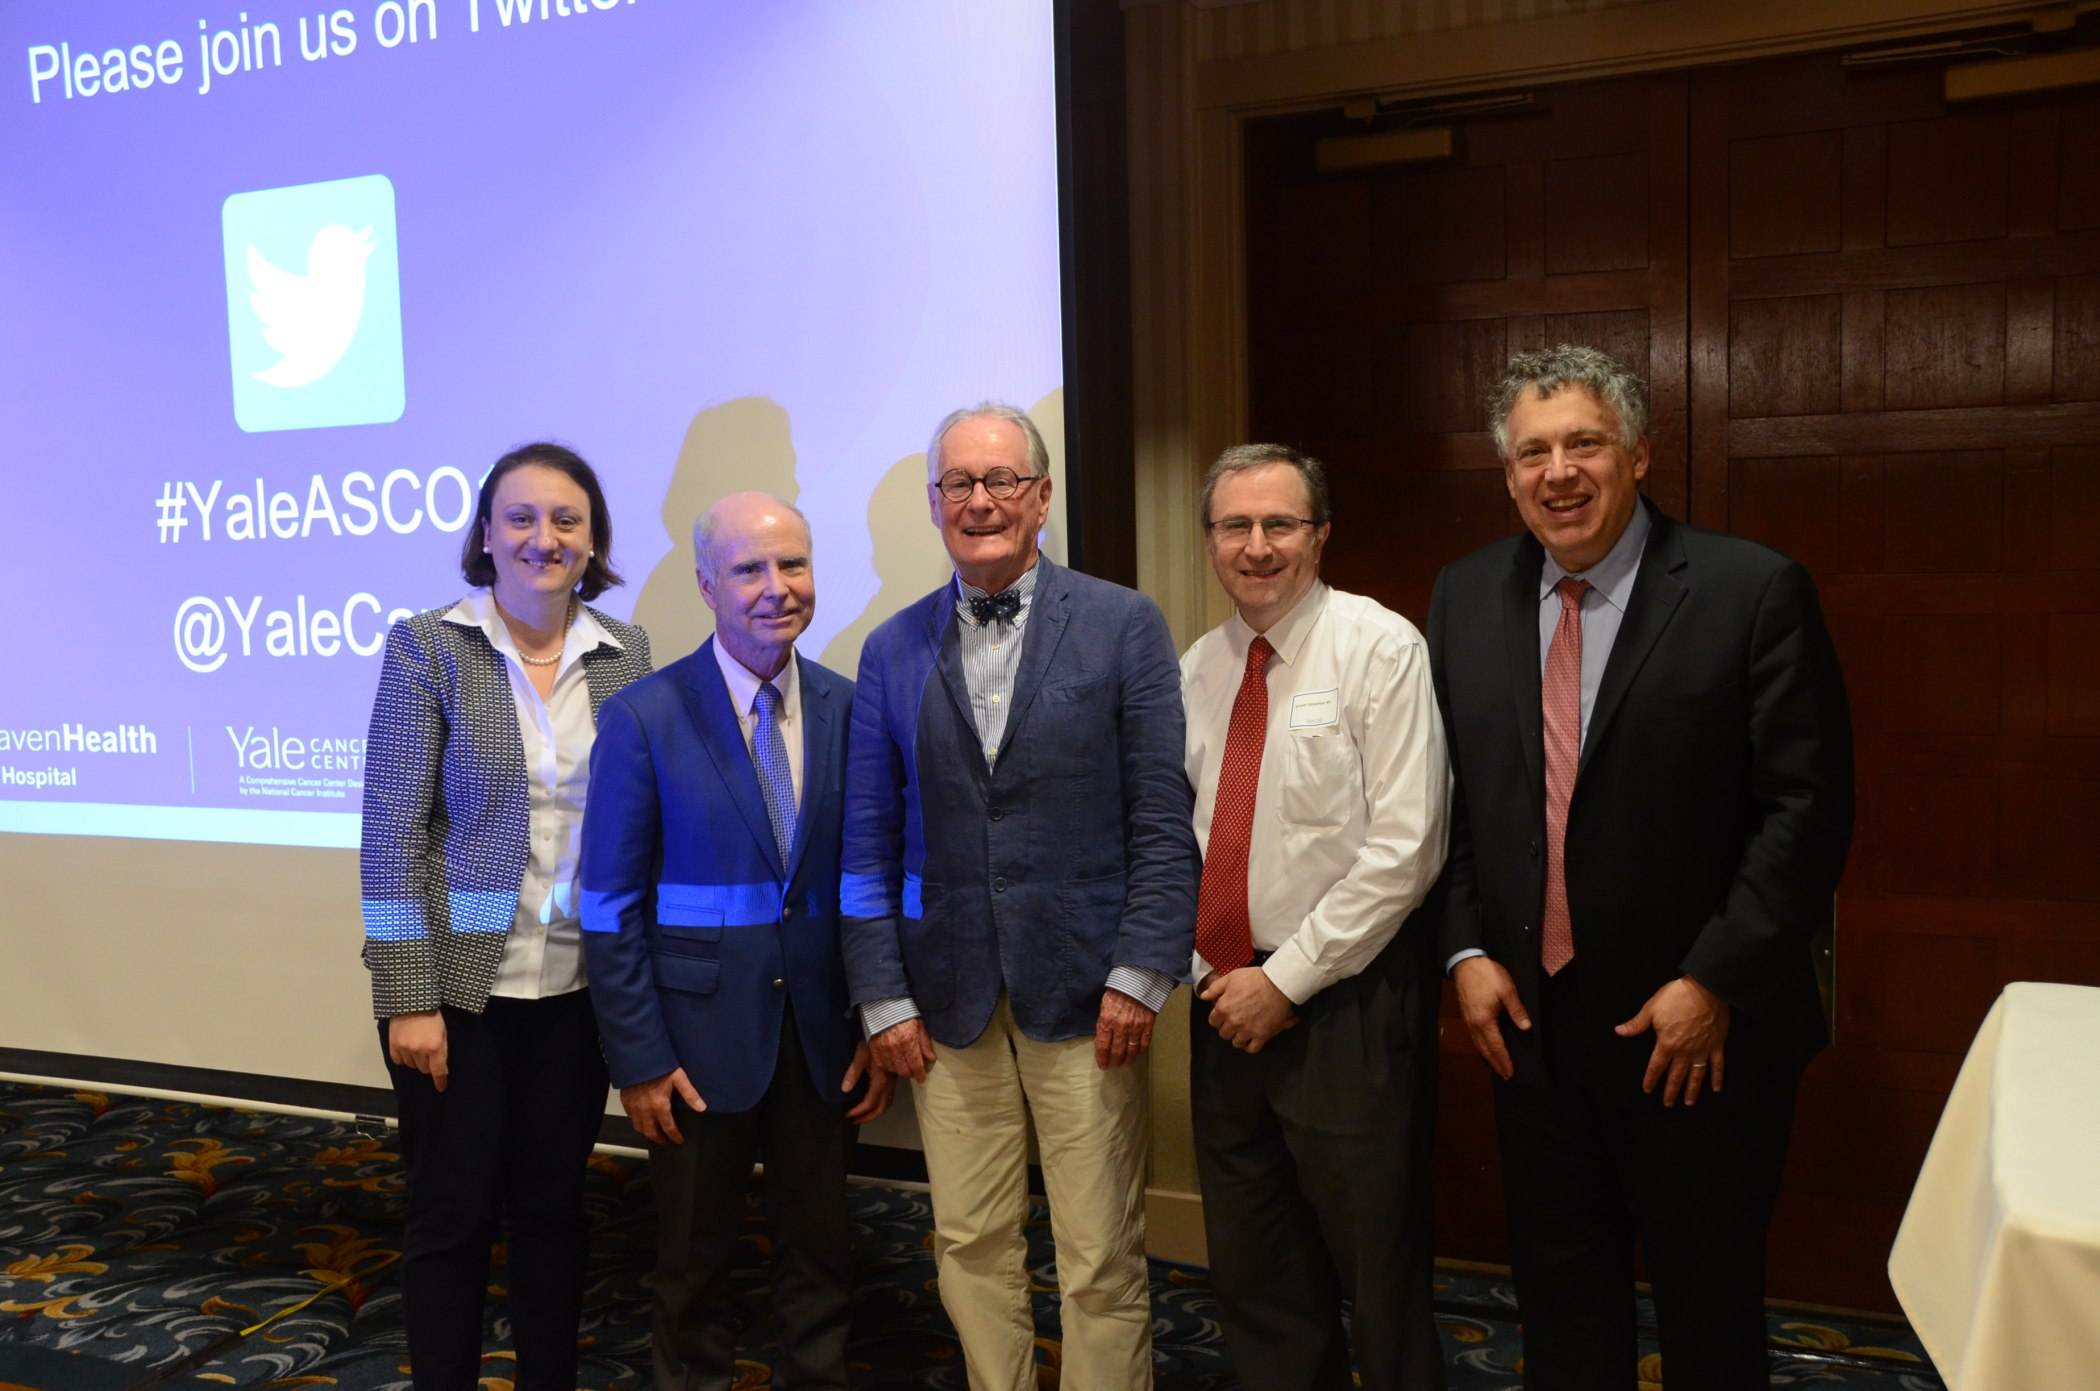 Yale's ASCO Review 2019